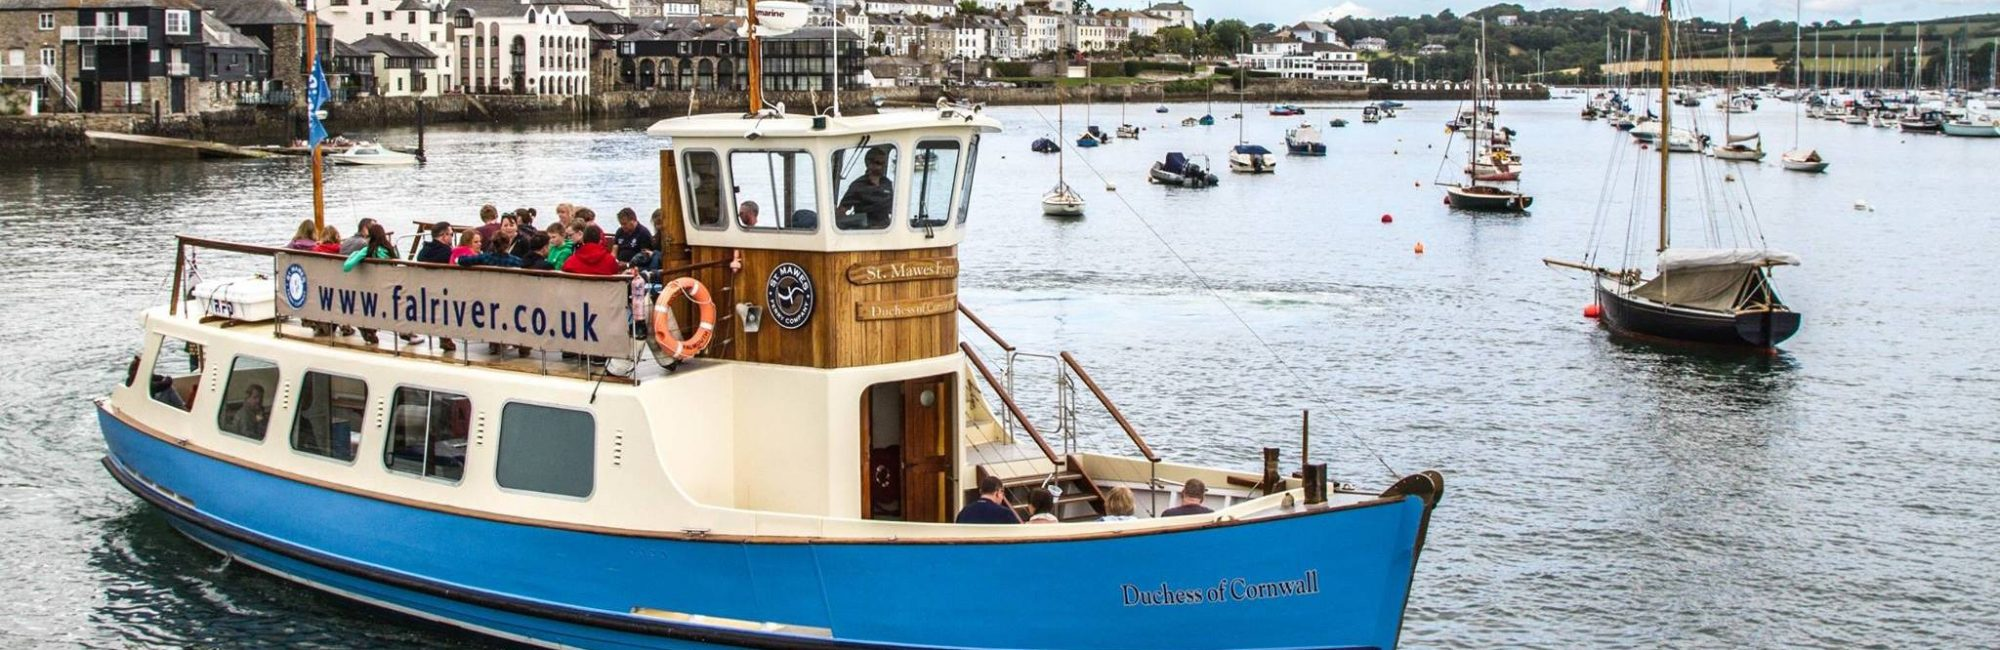 St. Mawes Ferry